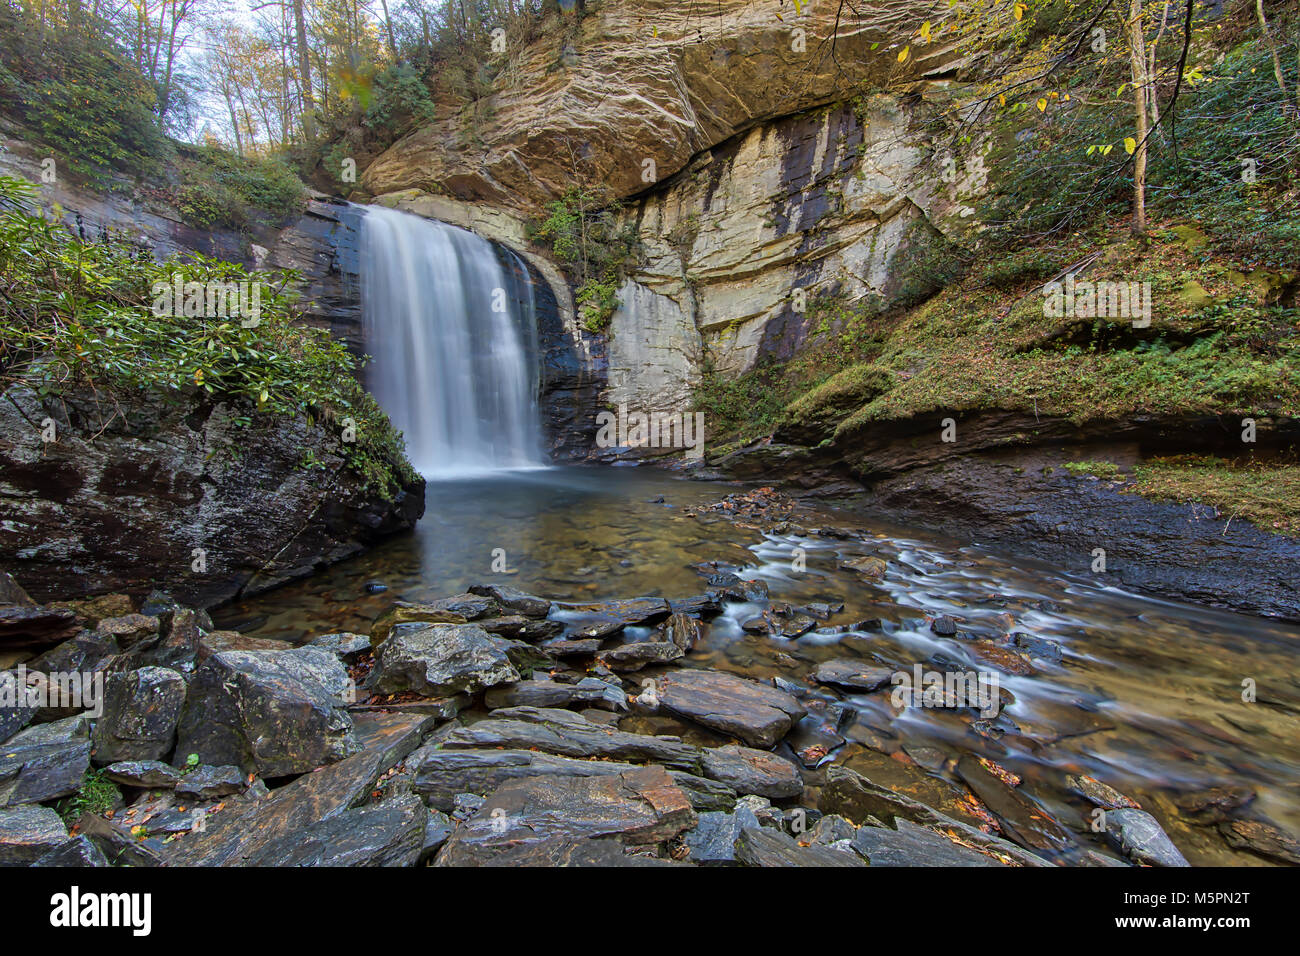 Looking Glass Falls - Stock Image